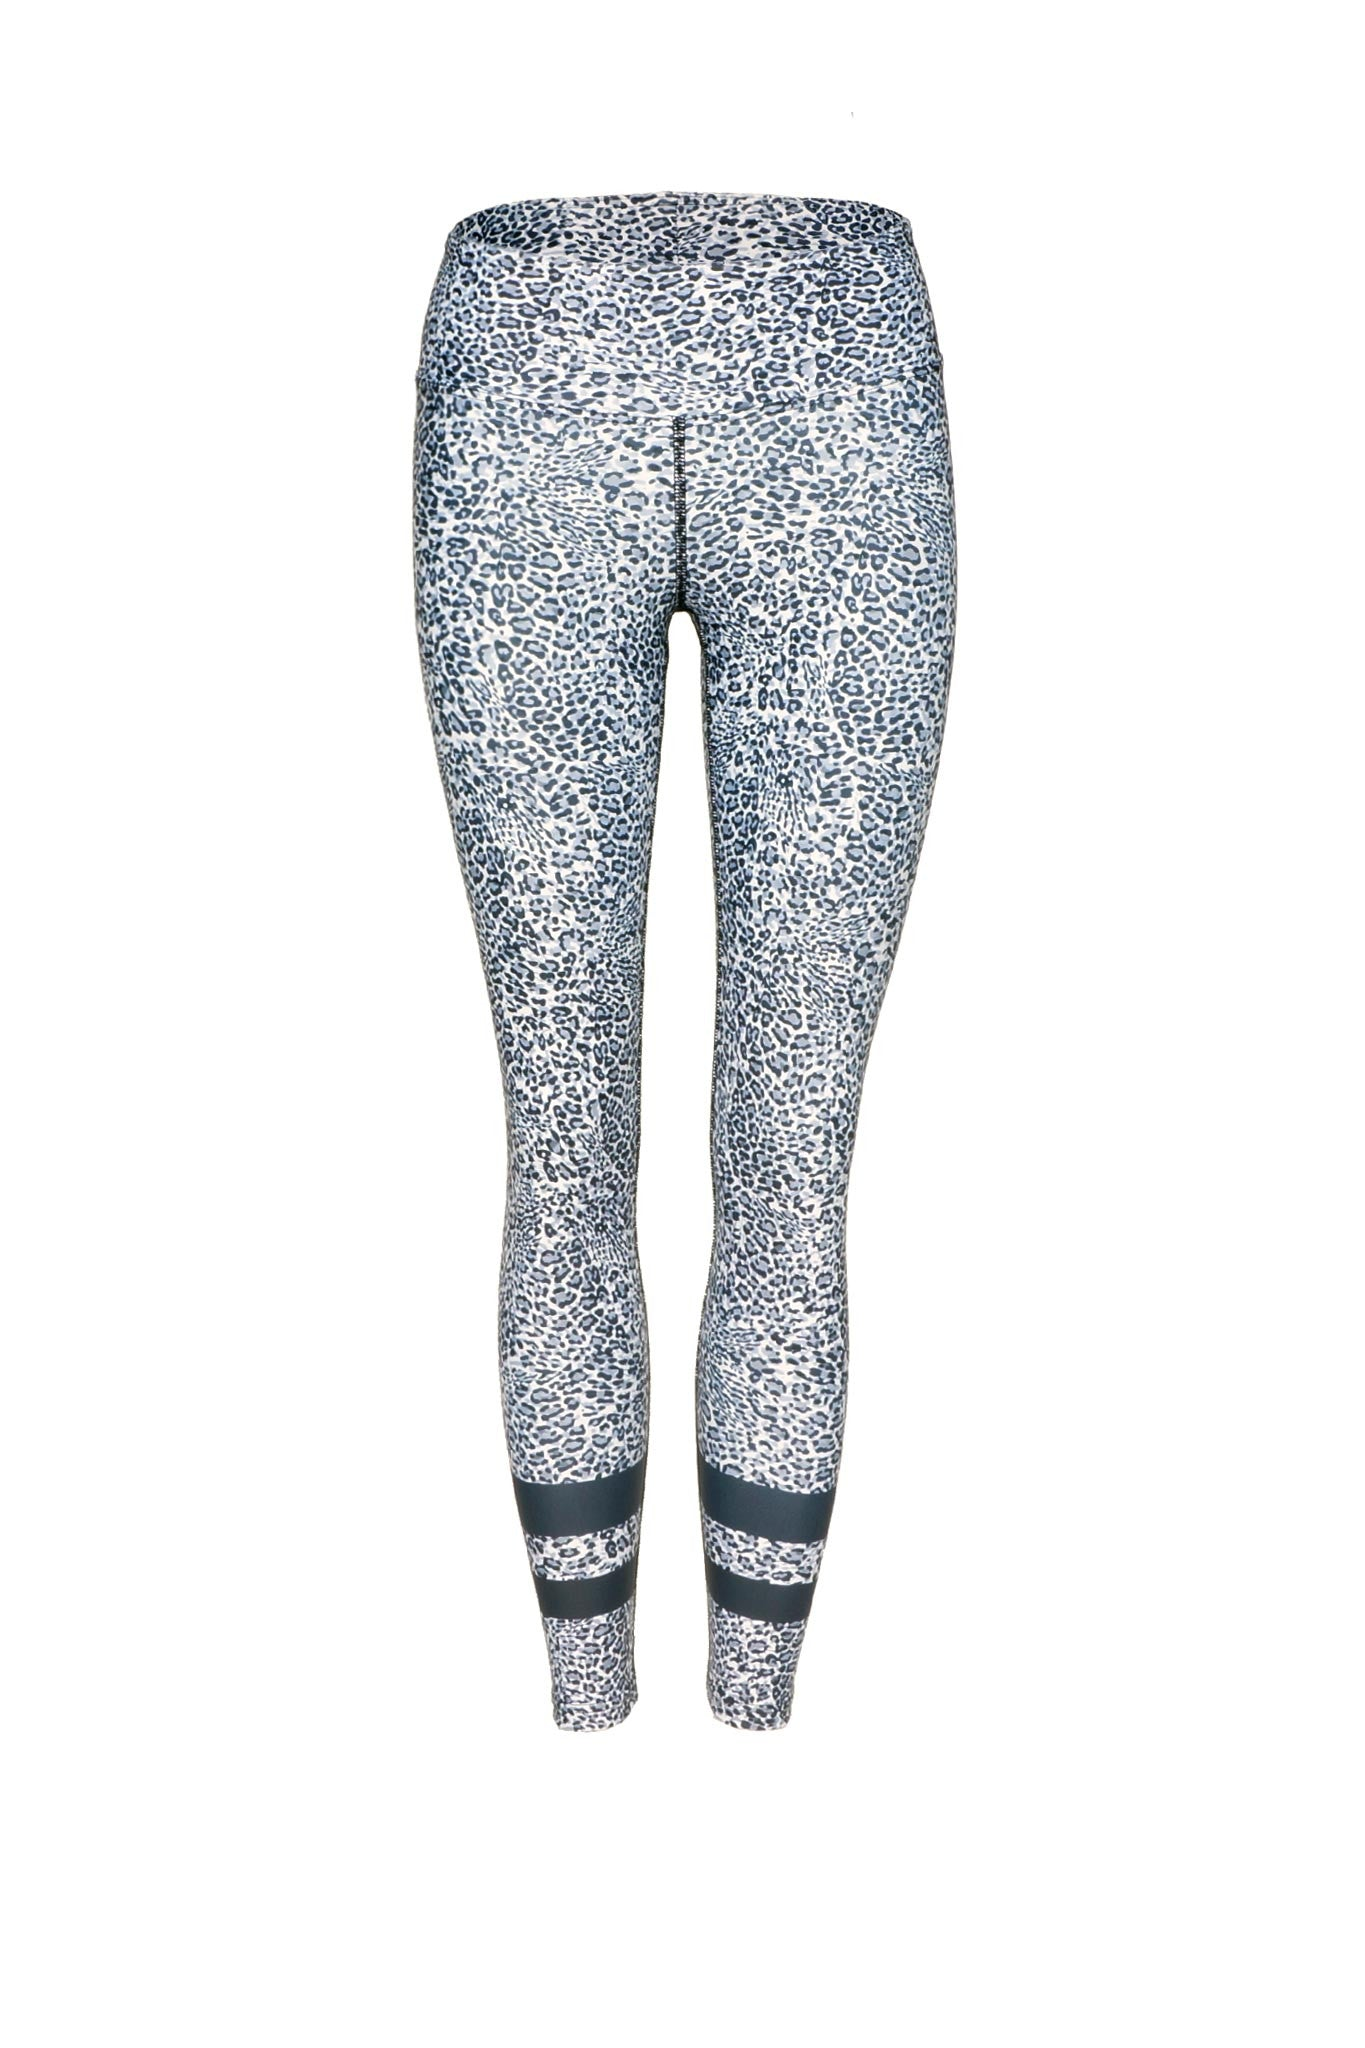 High-Waist 7/8 Leggings in Snow Leopard